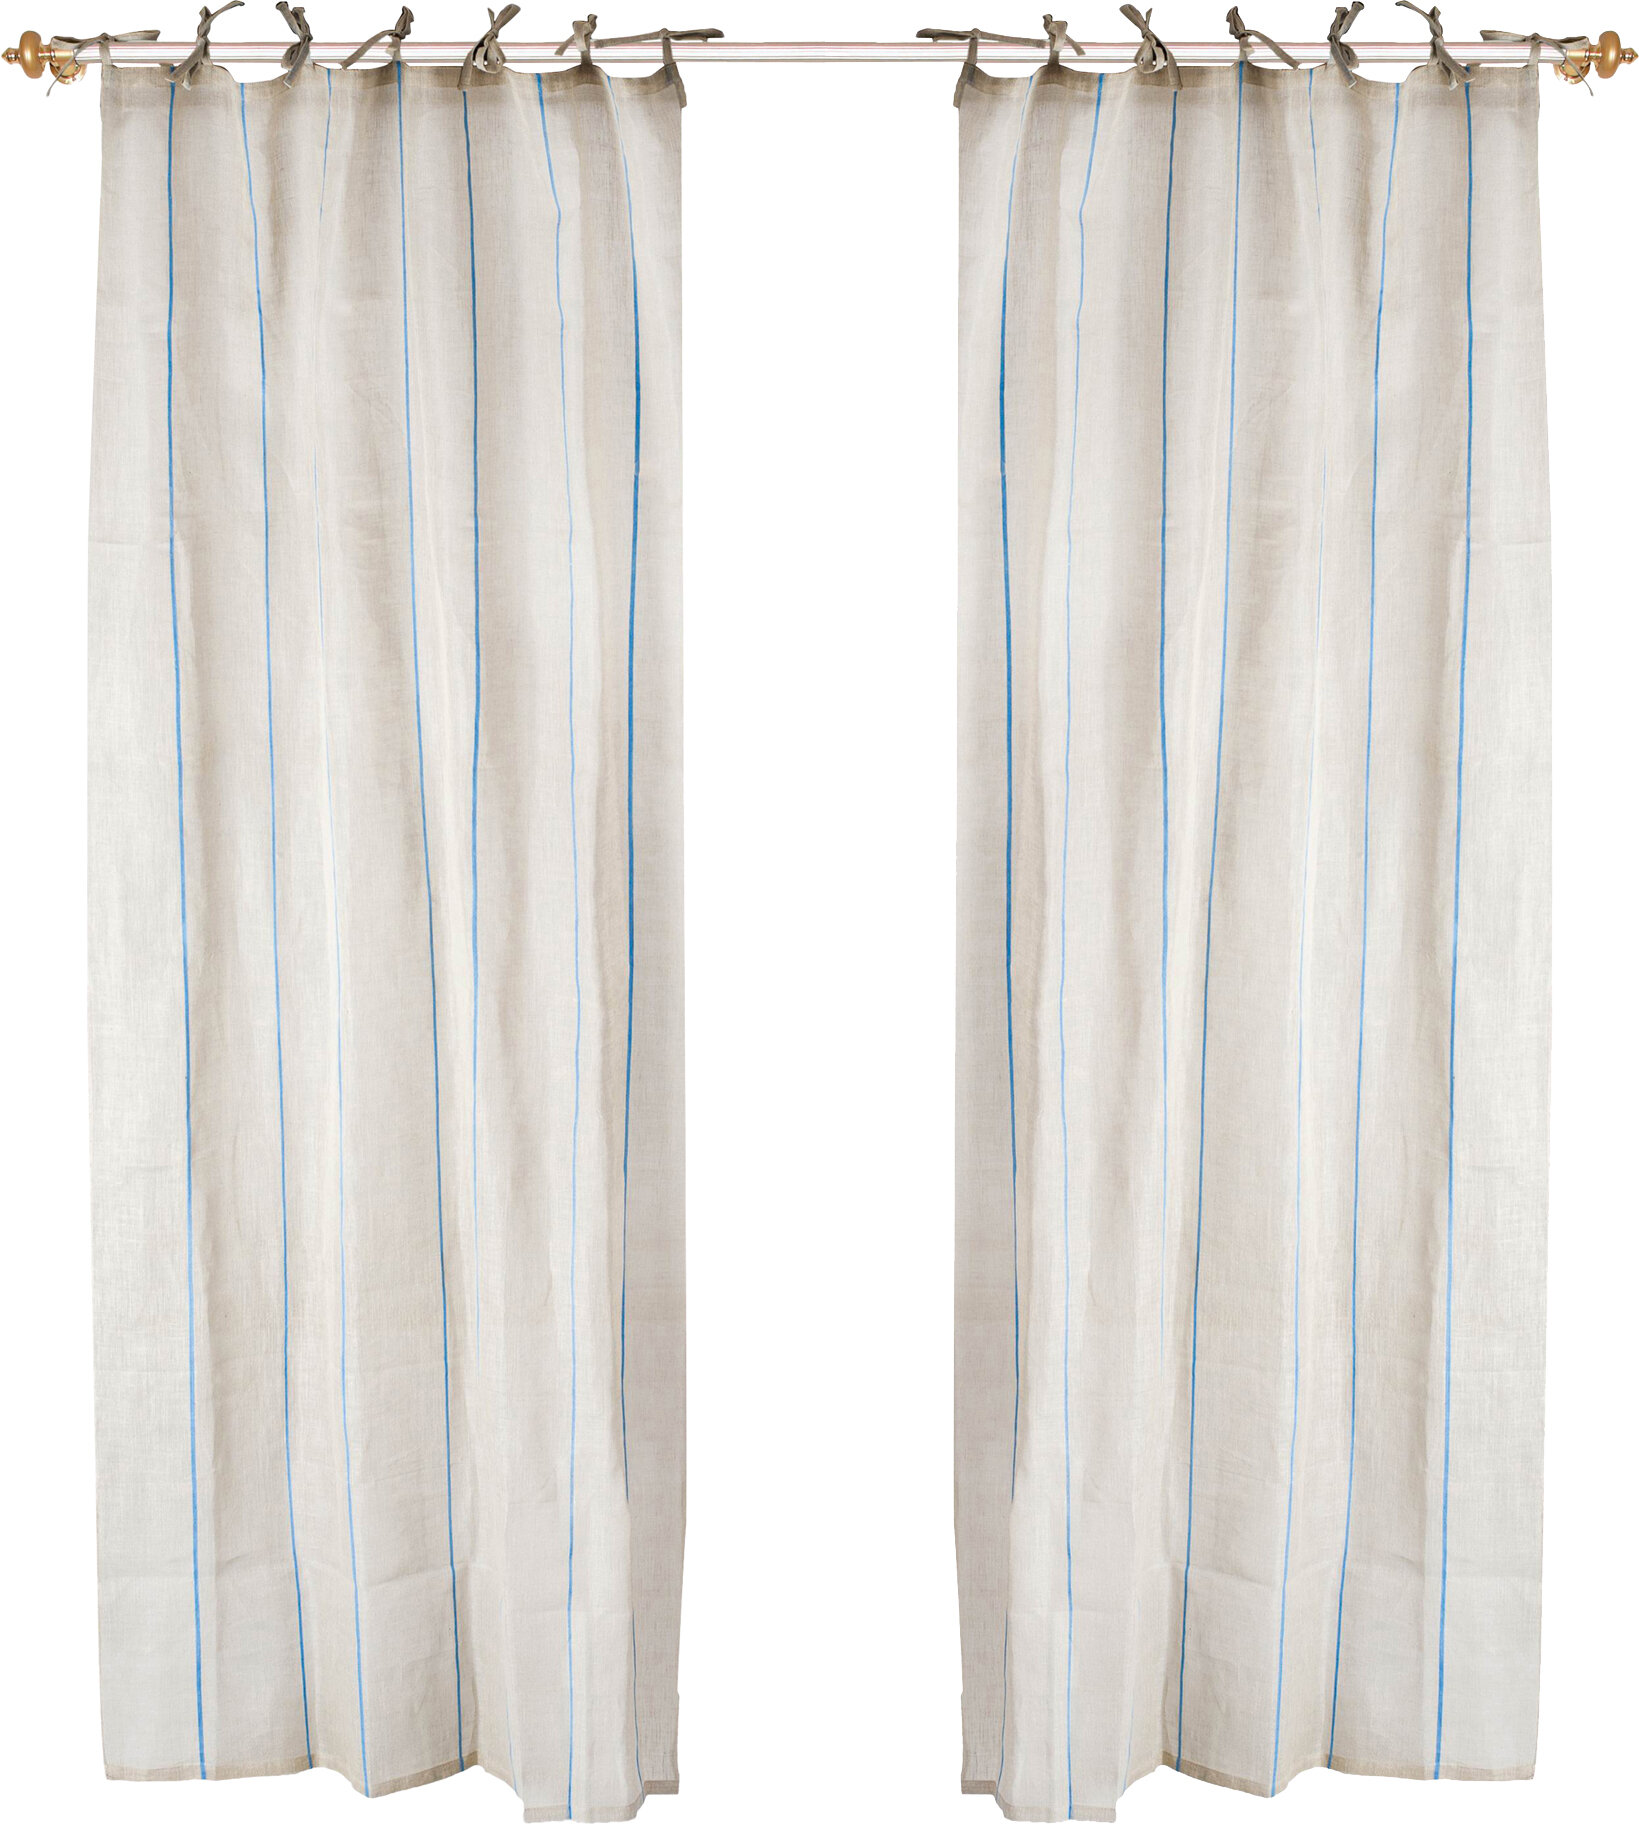 Delicieux Maisy Tie Top Curtain Panel In Light Blue